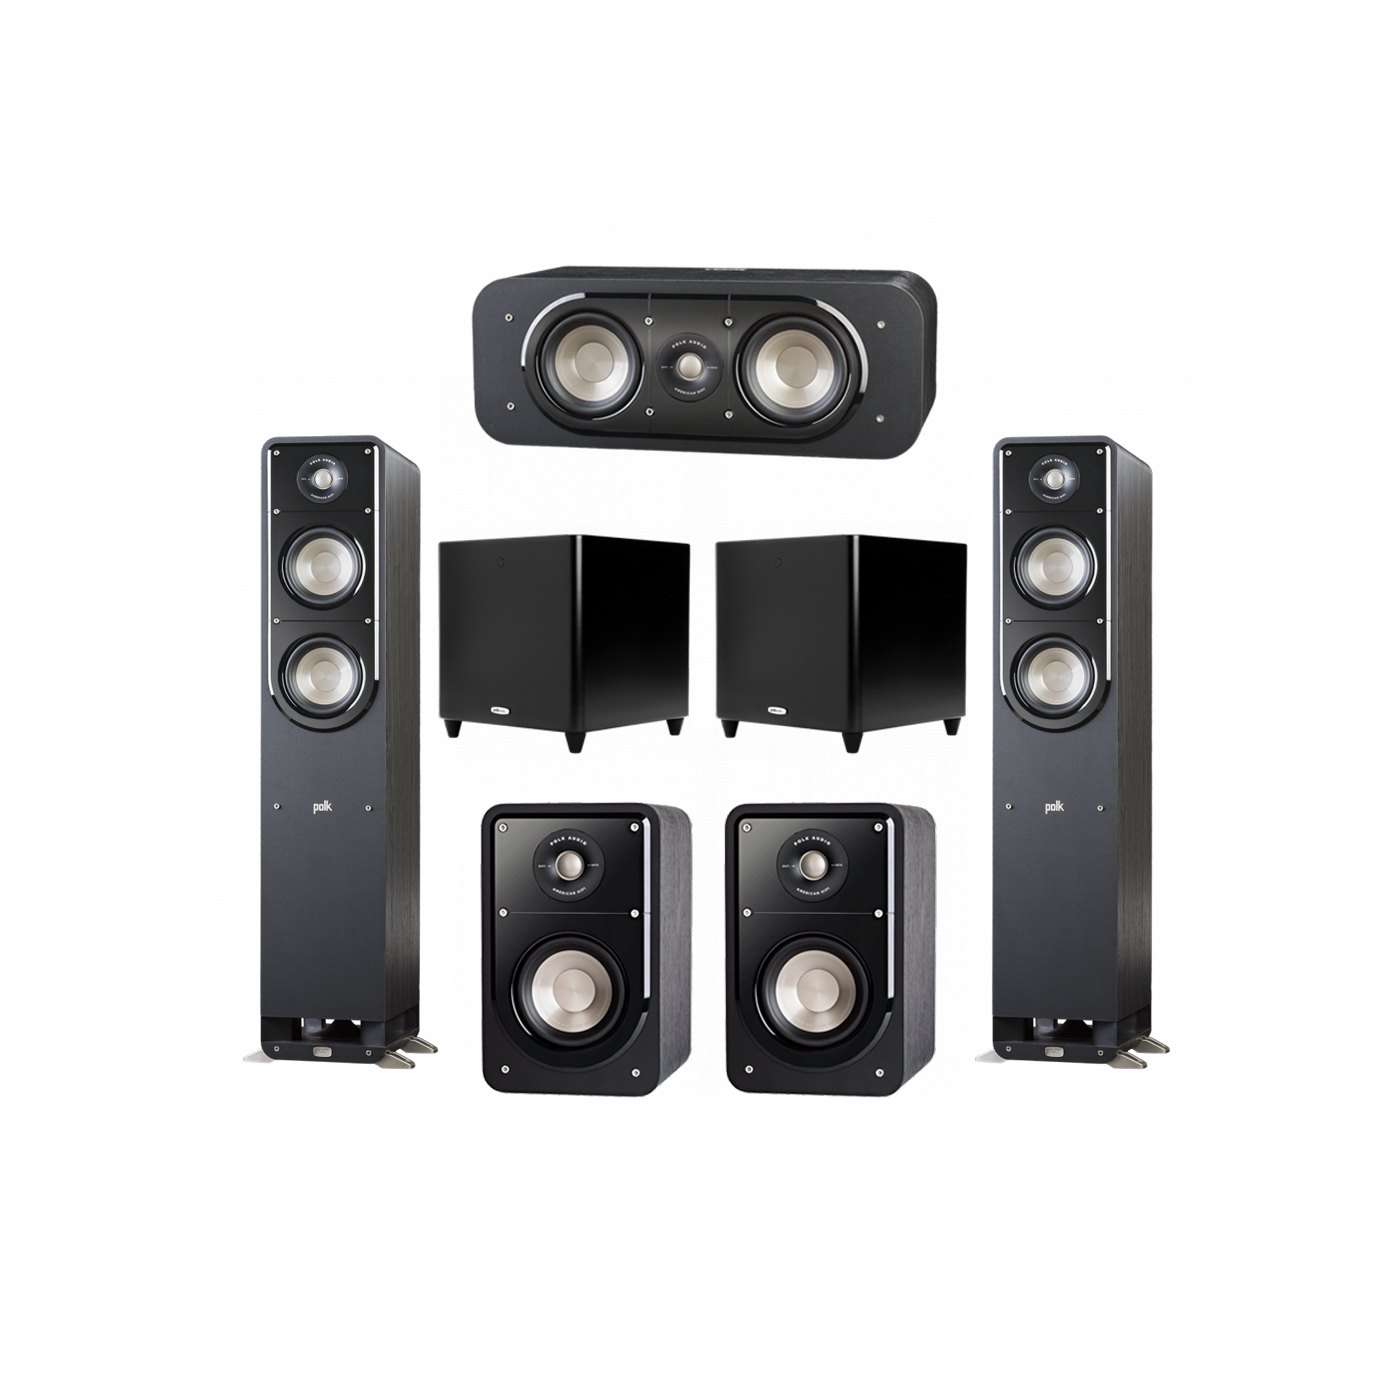 Polk Audio Signature 5.2 System with 2 S50 Tower Speaker, 1 Polk S30 Center Speaker, 2 Polk S15 Bookshelf Speaker, 2 Polk DSW PRO 660 wi Subwoofer